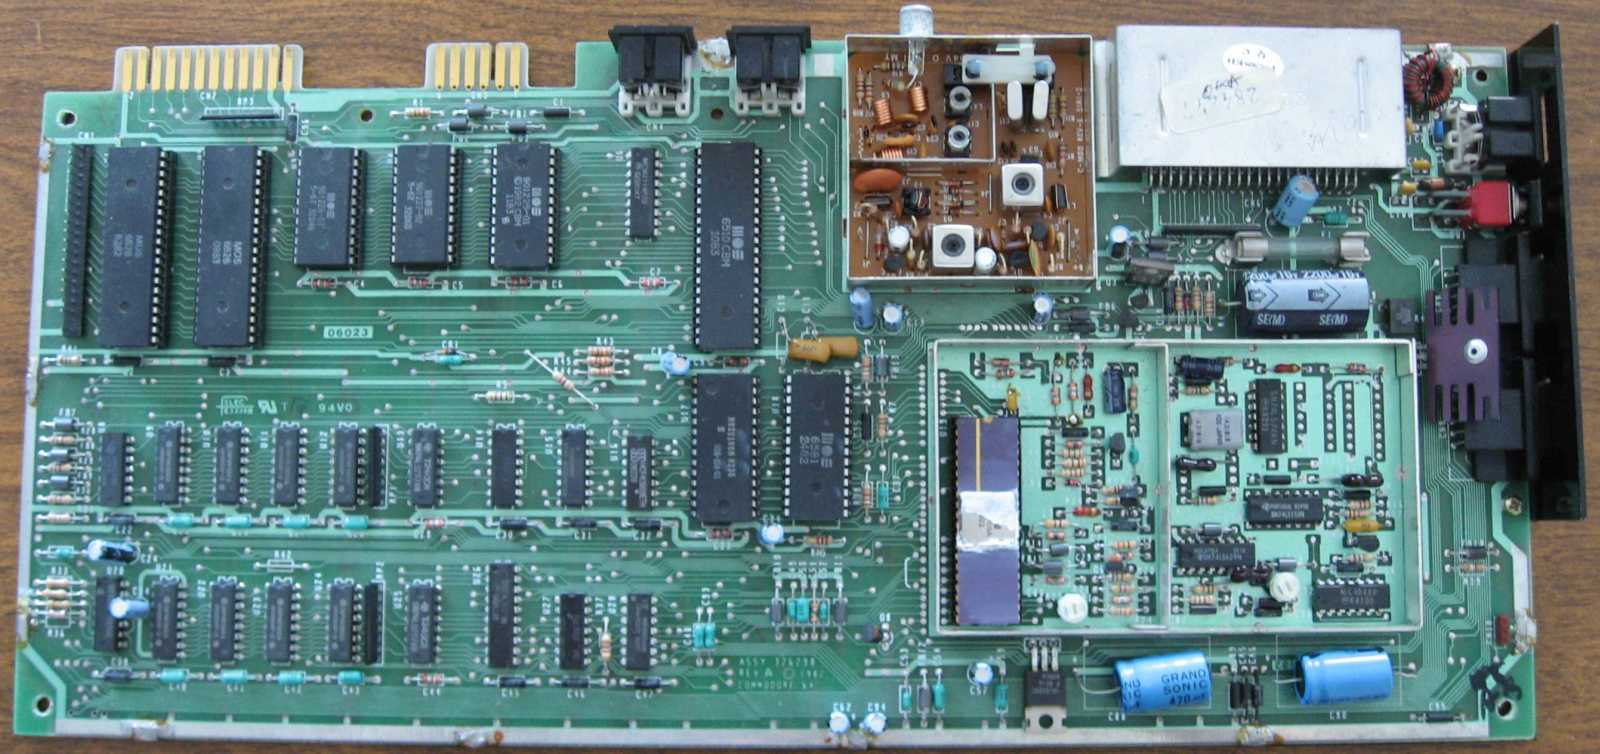 Mjks Commodore Hardware Overview 64 Motherboard Circuit Board Components Find Picture Of Original Ntsc C64